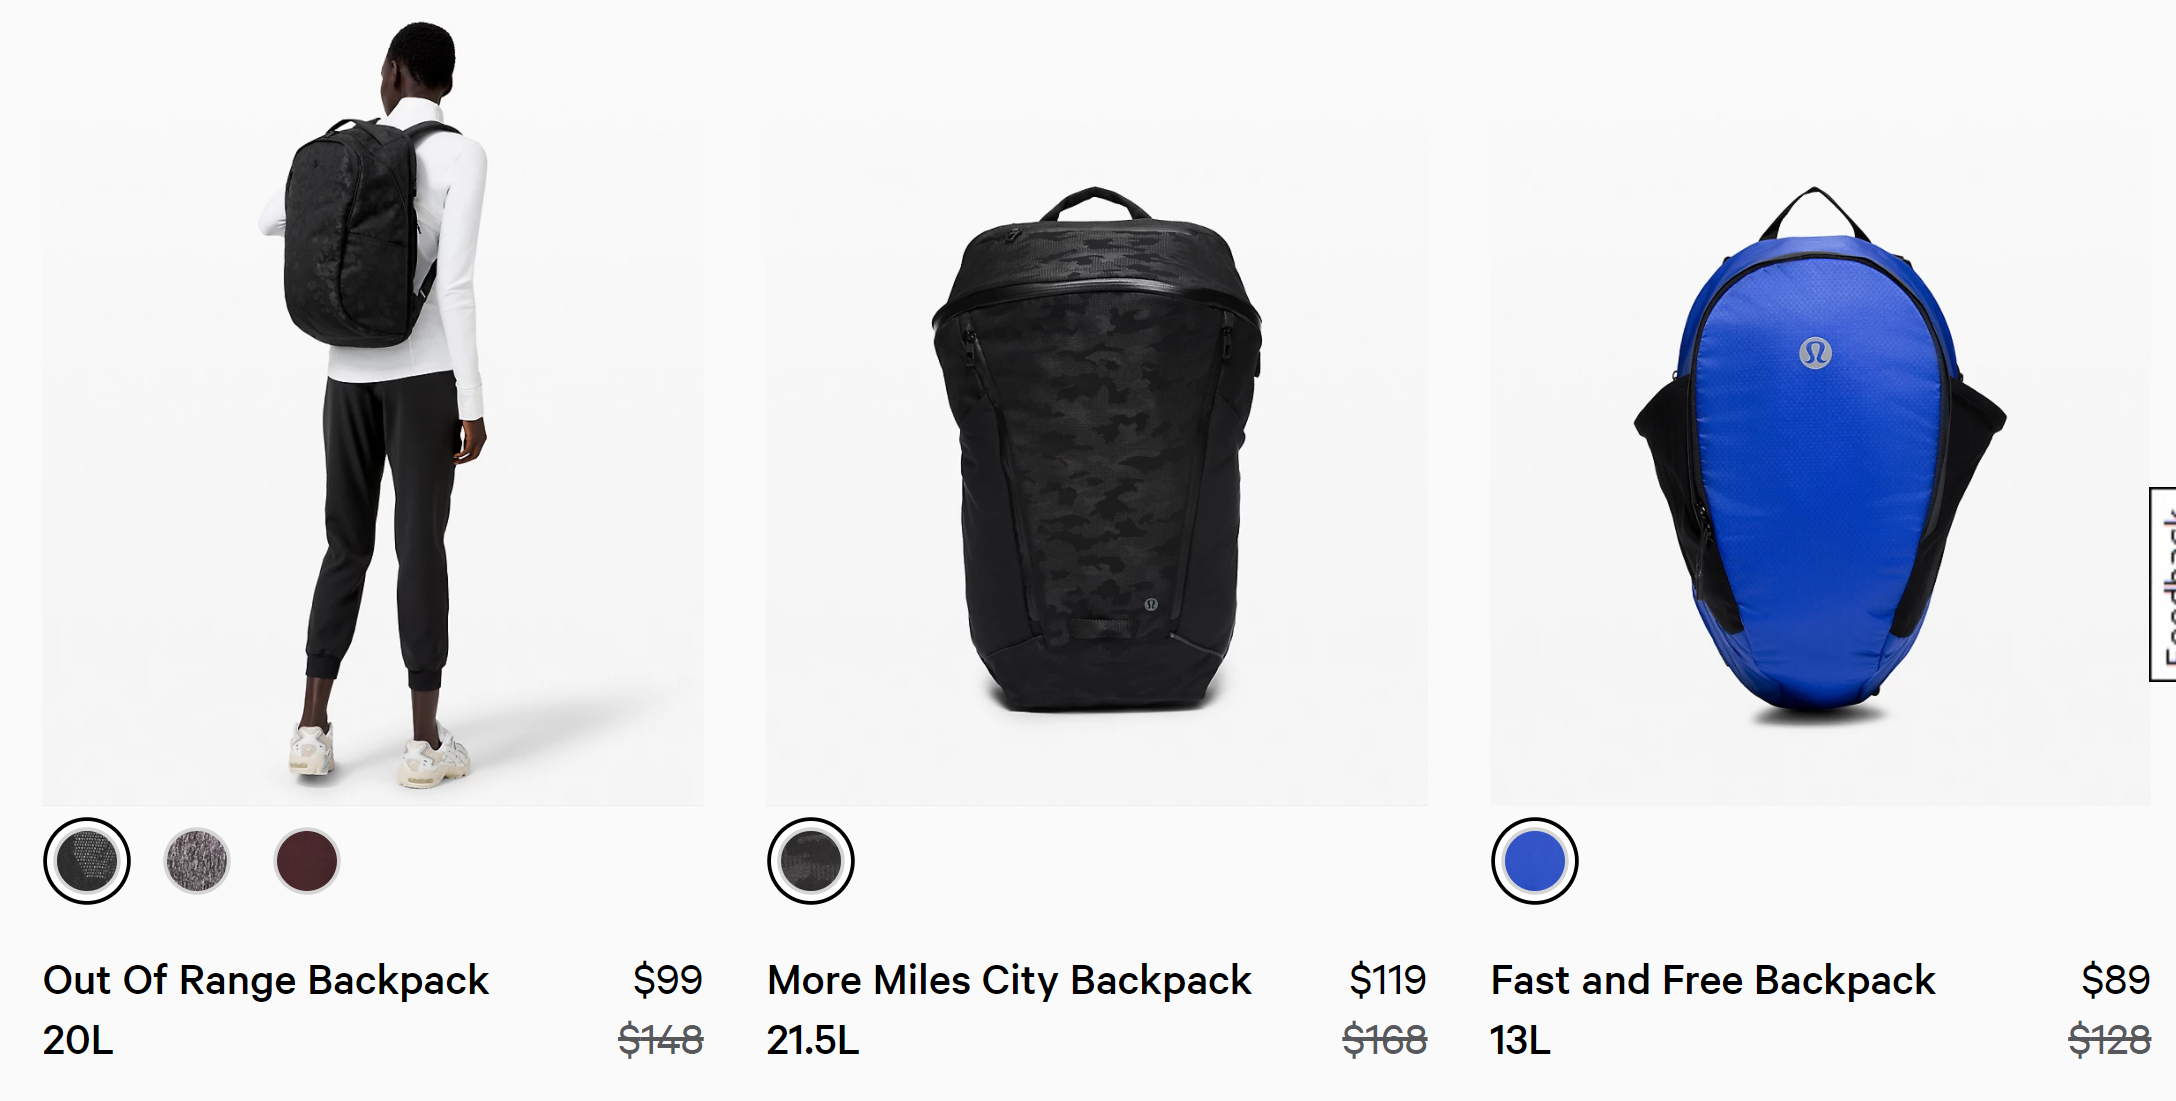 lululemon-leisure-sports-backpack-up-to-60-off-free-shipping-2020-11-22